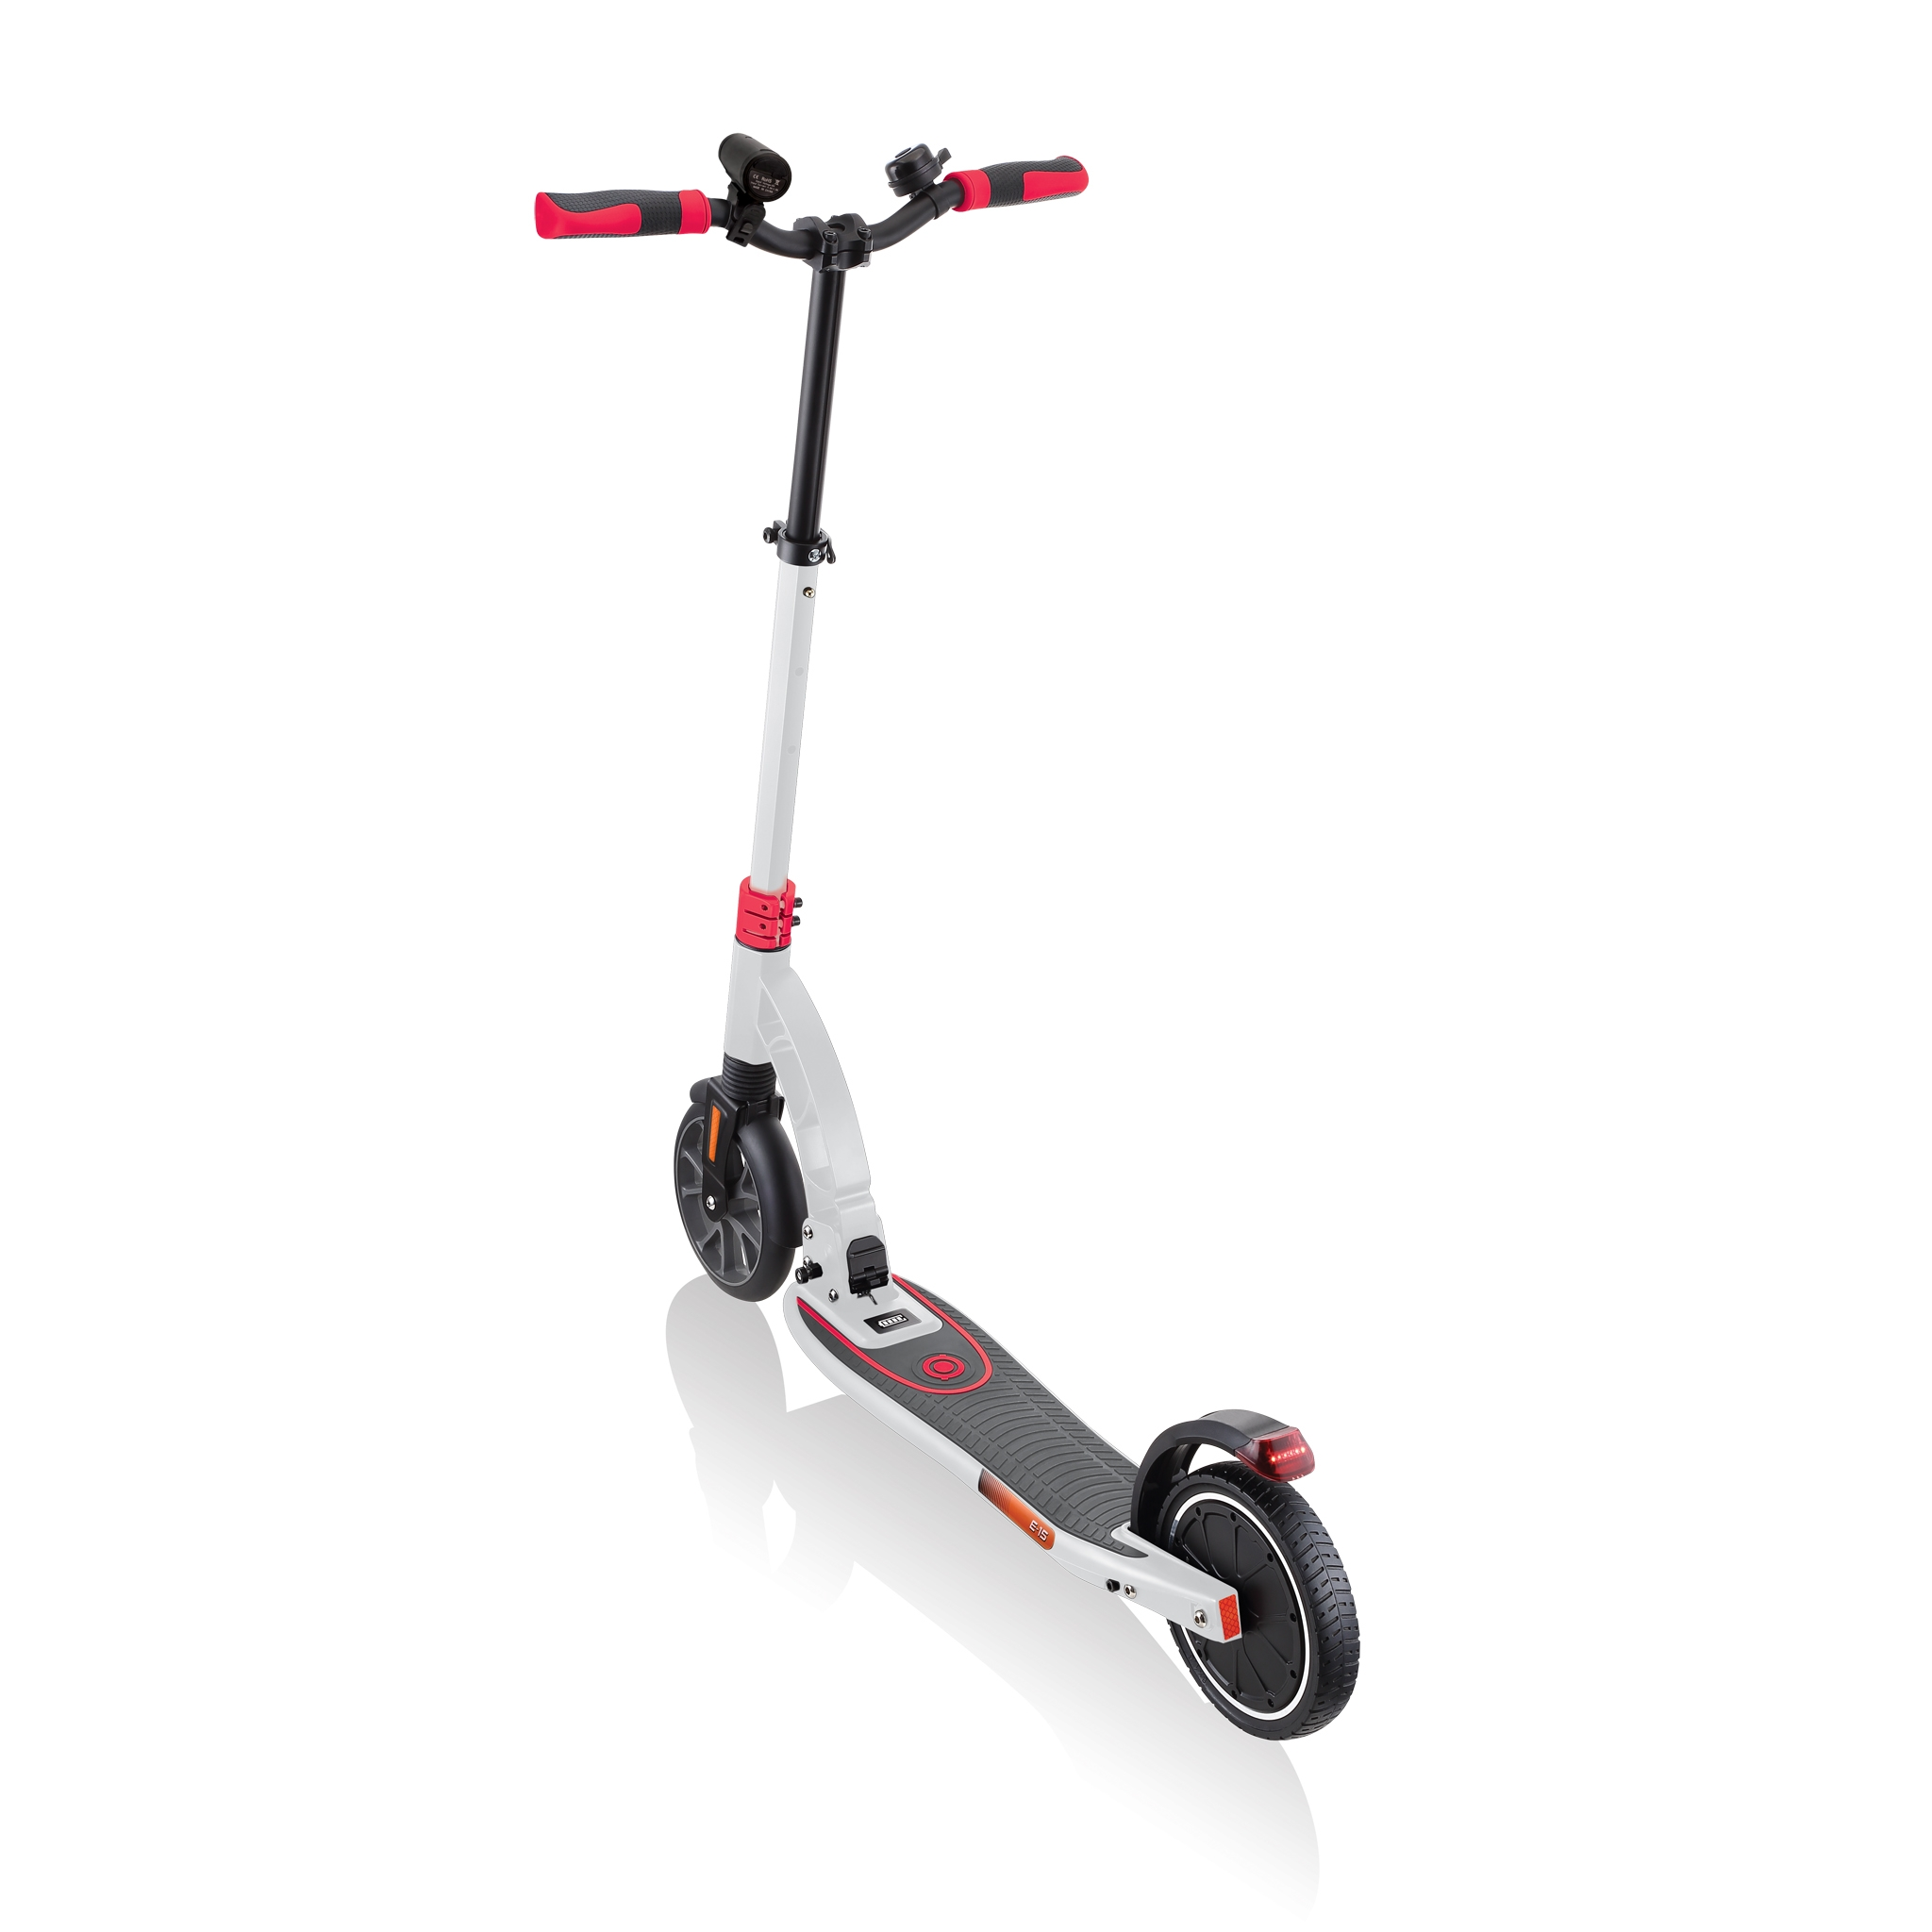 Globber-ONE-K-E-MOTION-15-electric-scooter-for-adults-and-teens-with-accelerator-sensor 4